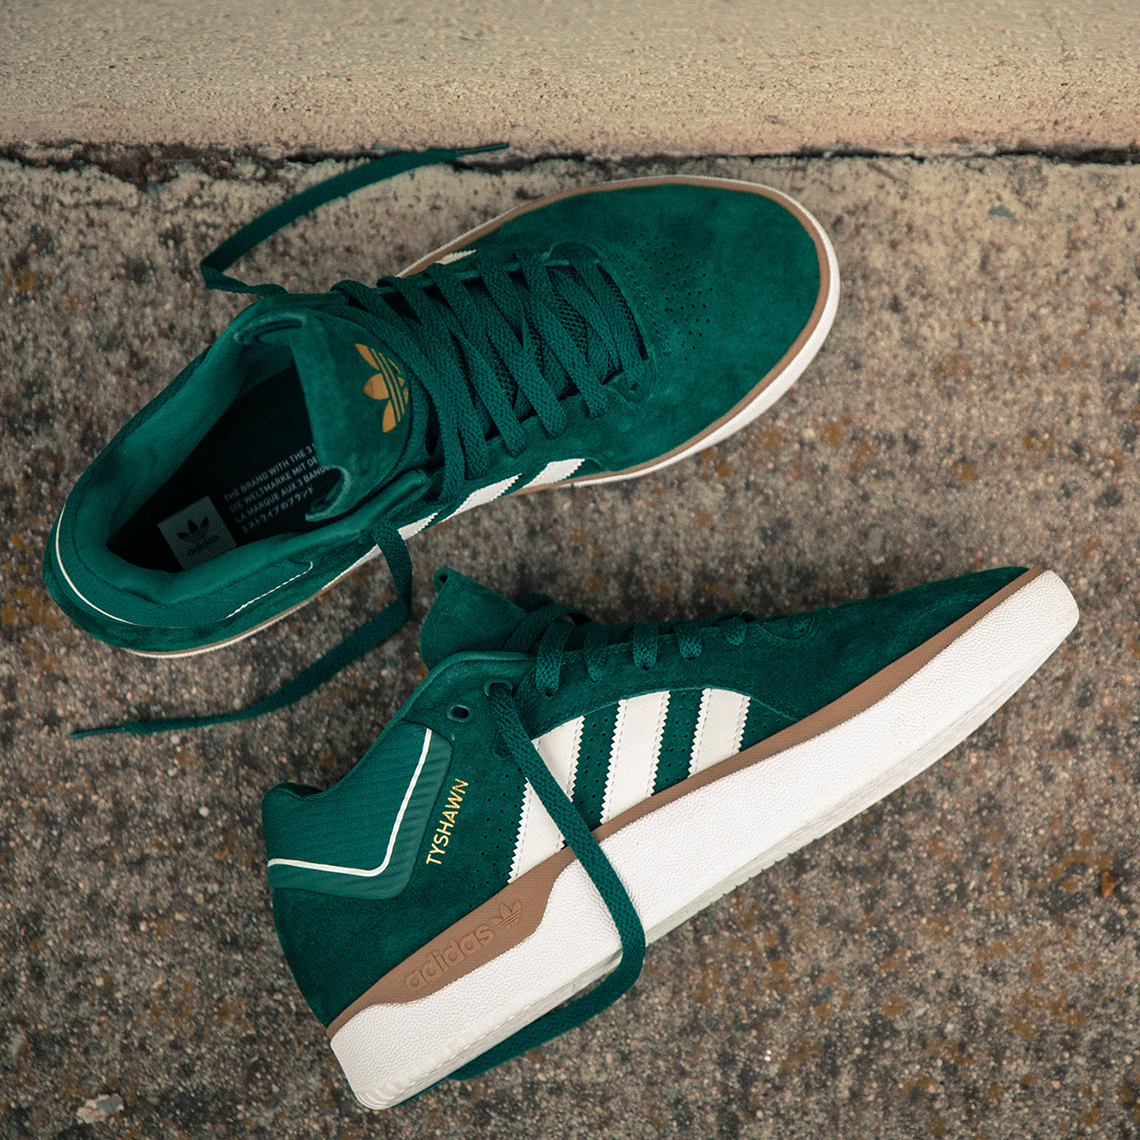 The adidas Skateboarding Tyshawn Appears In Green And White